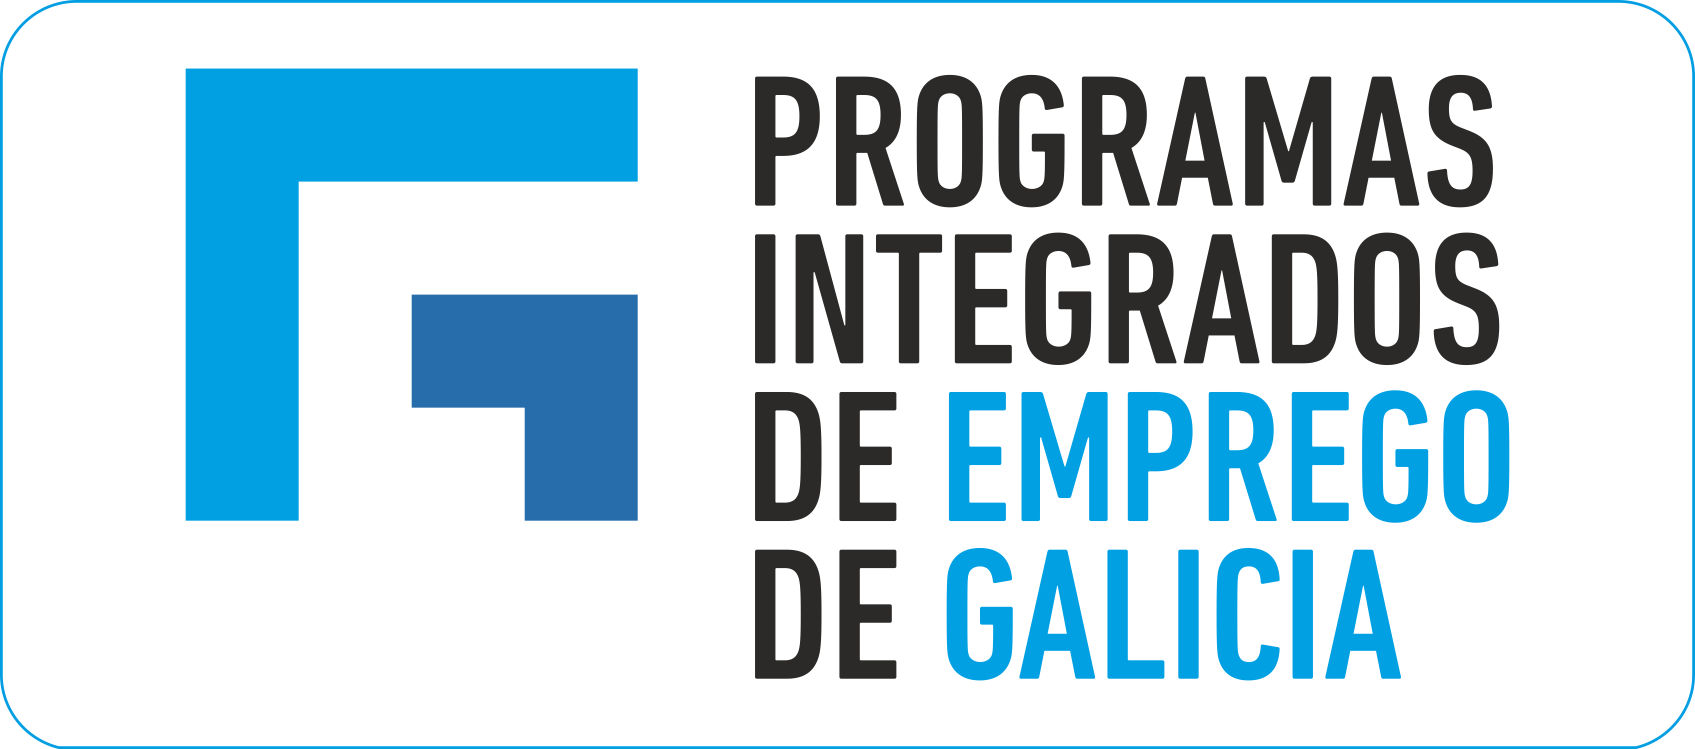 Logotipo Programas integrados 2019